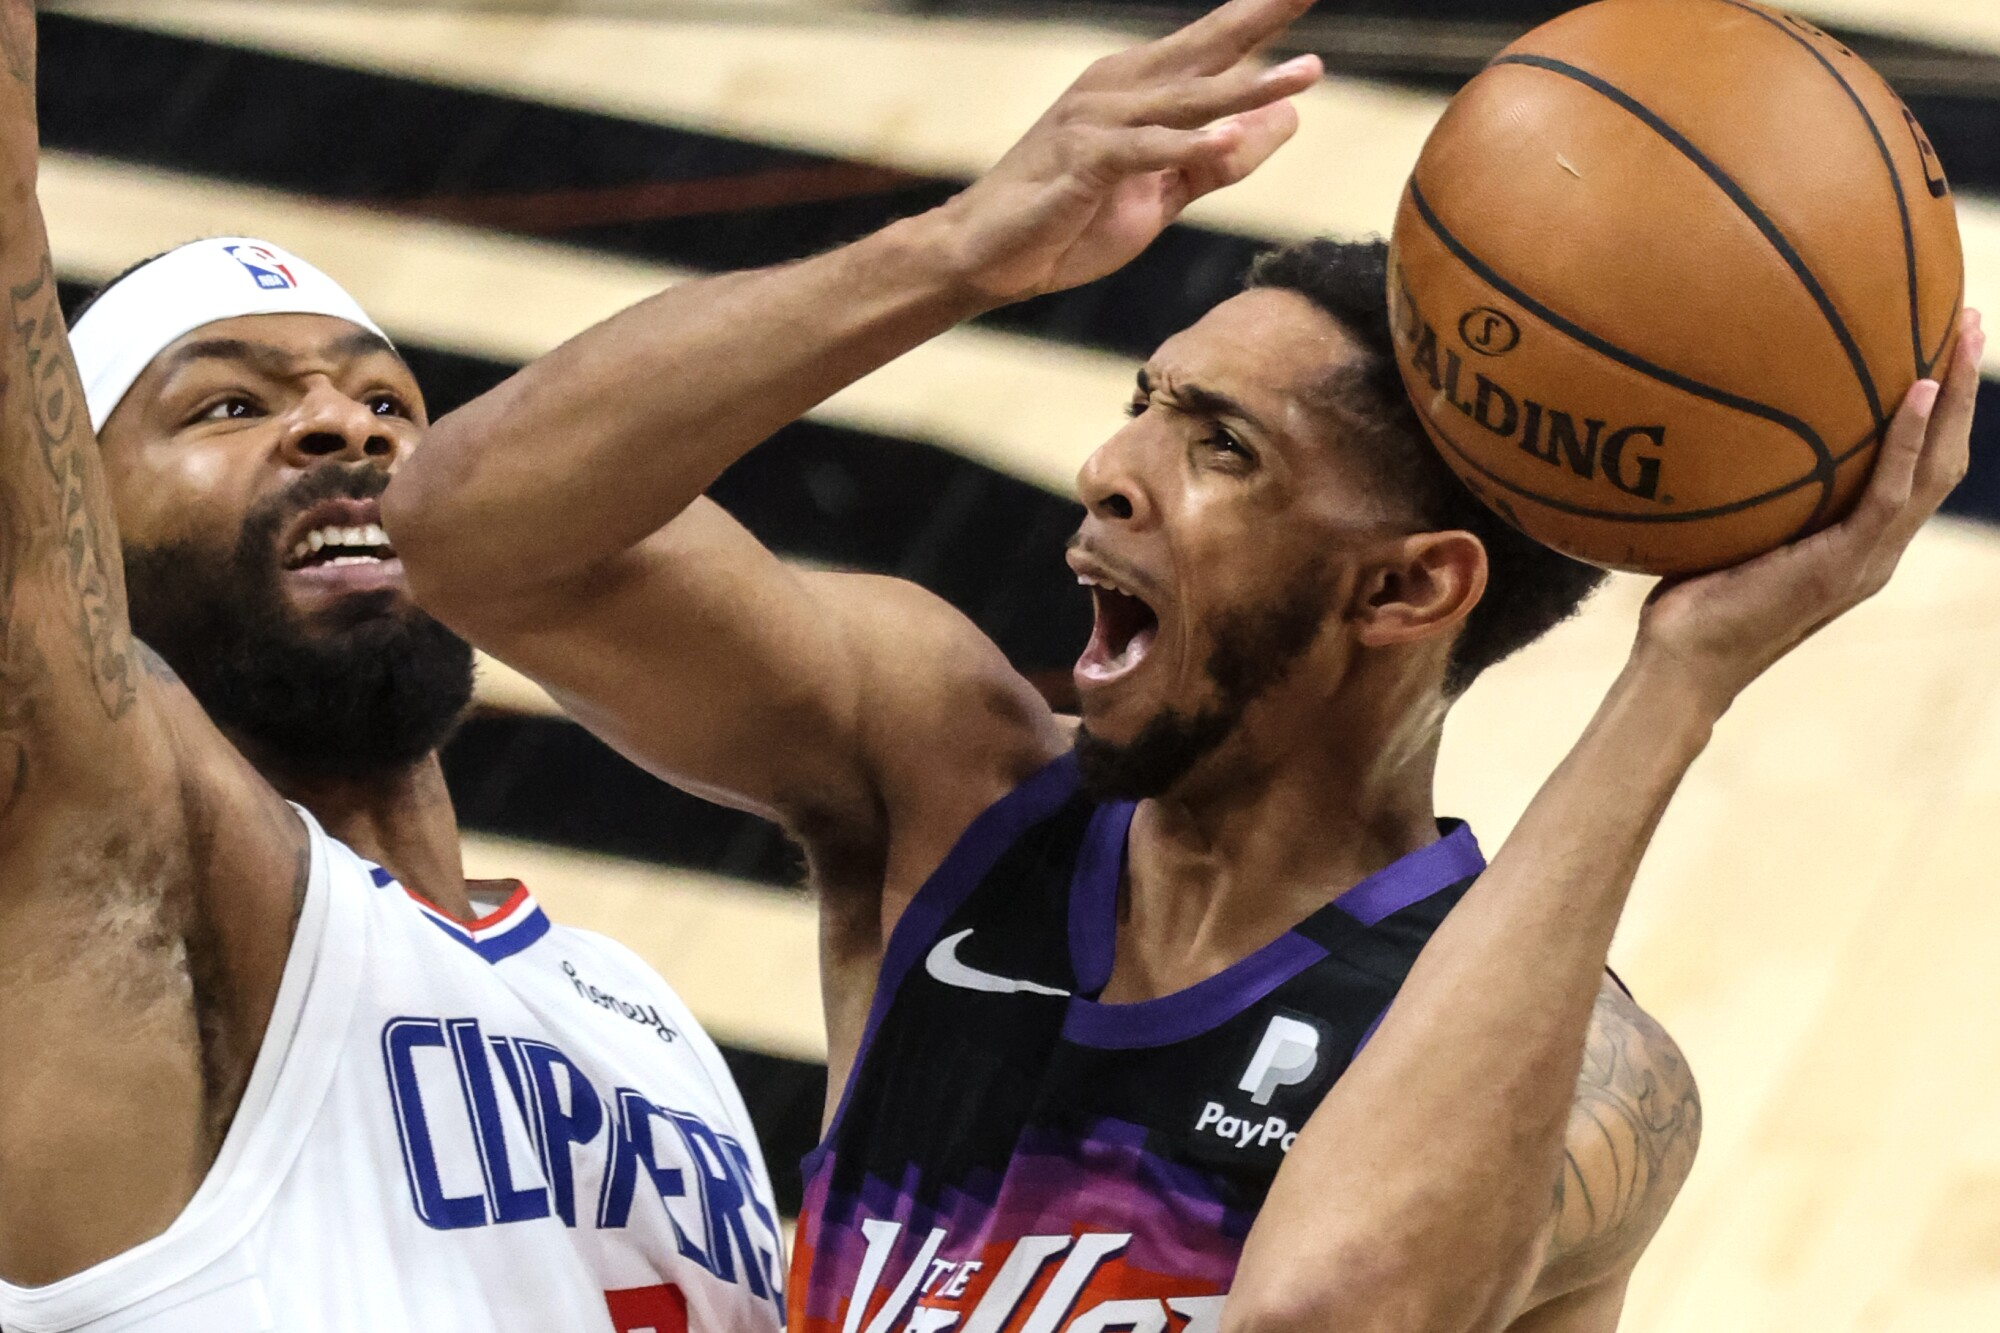 Suns guard Cameron Payne tries to score against Clippers forward Marcus Morris Sr. in Game 2.